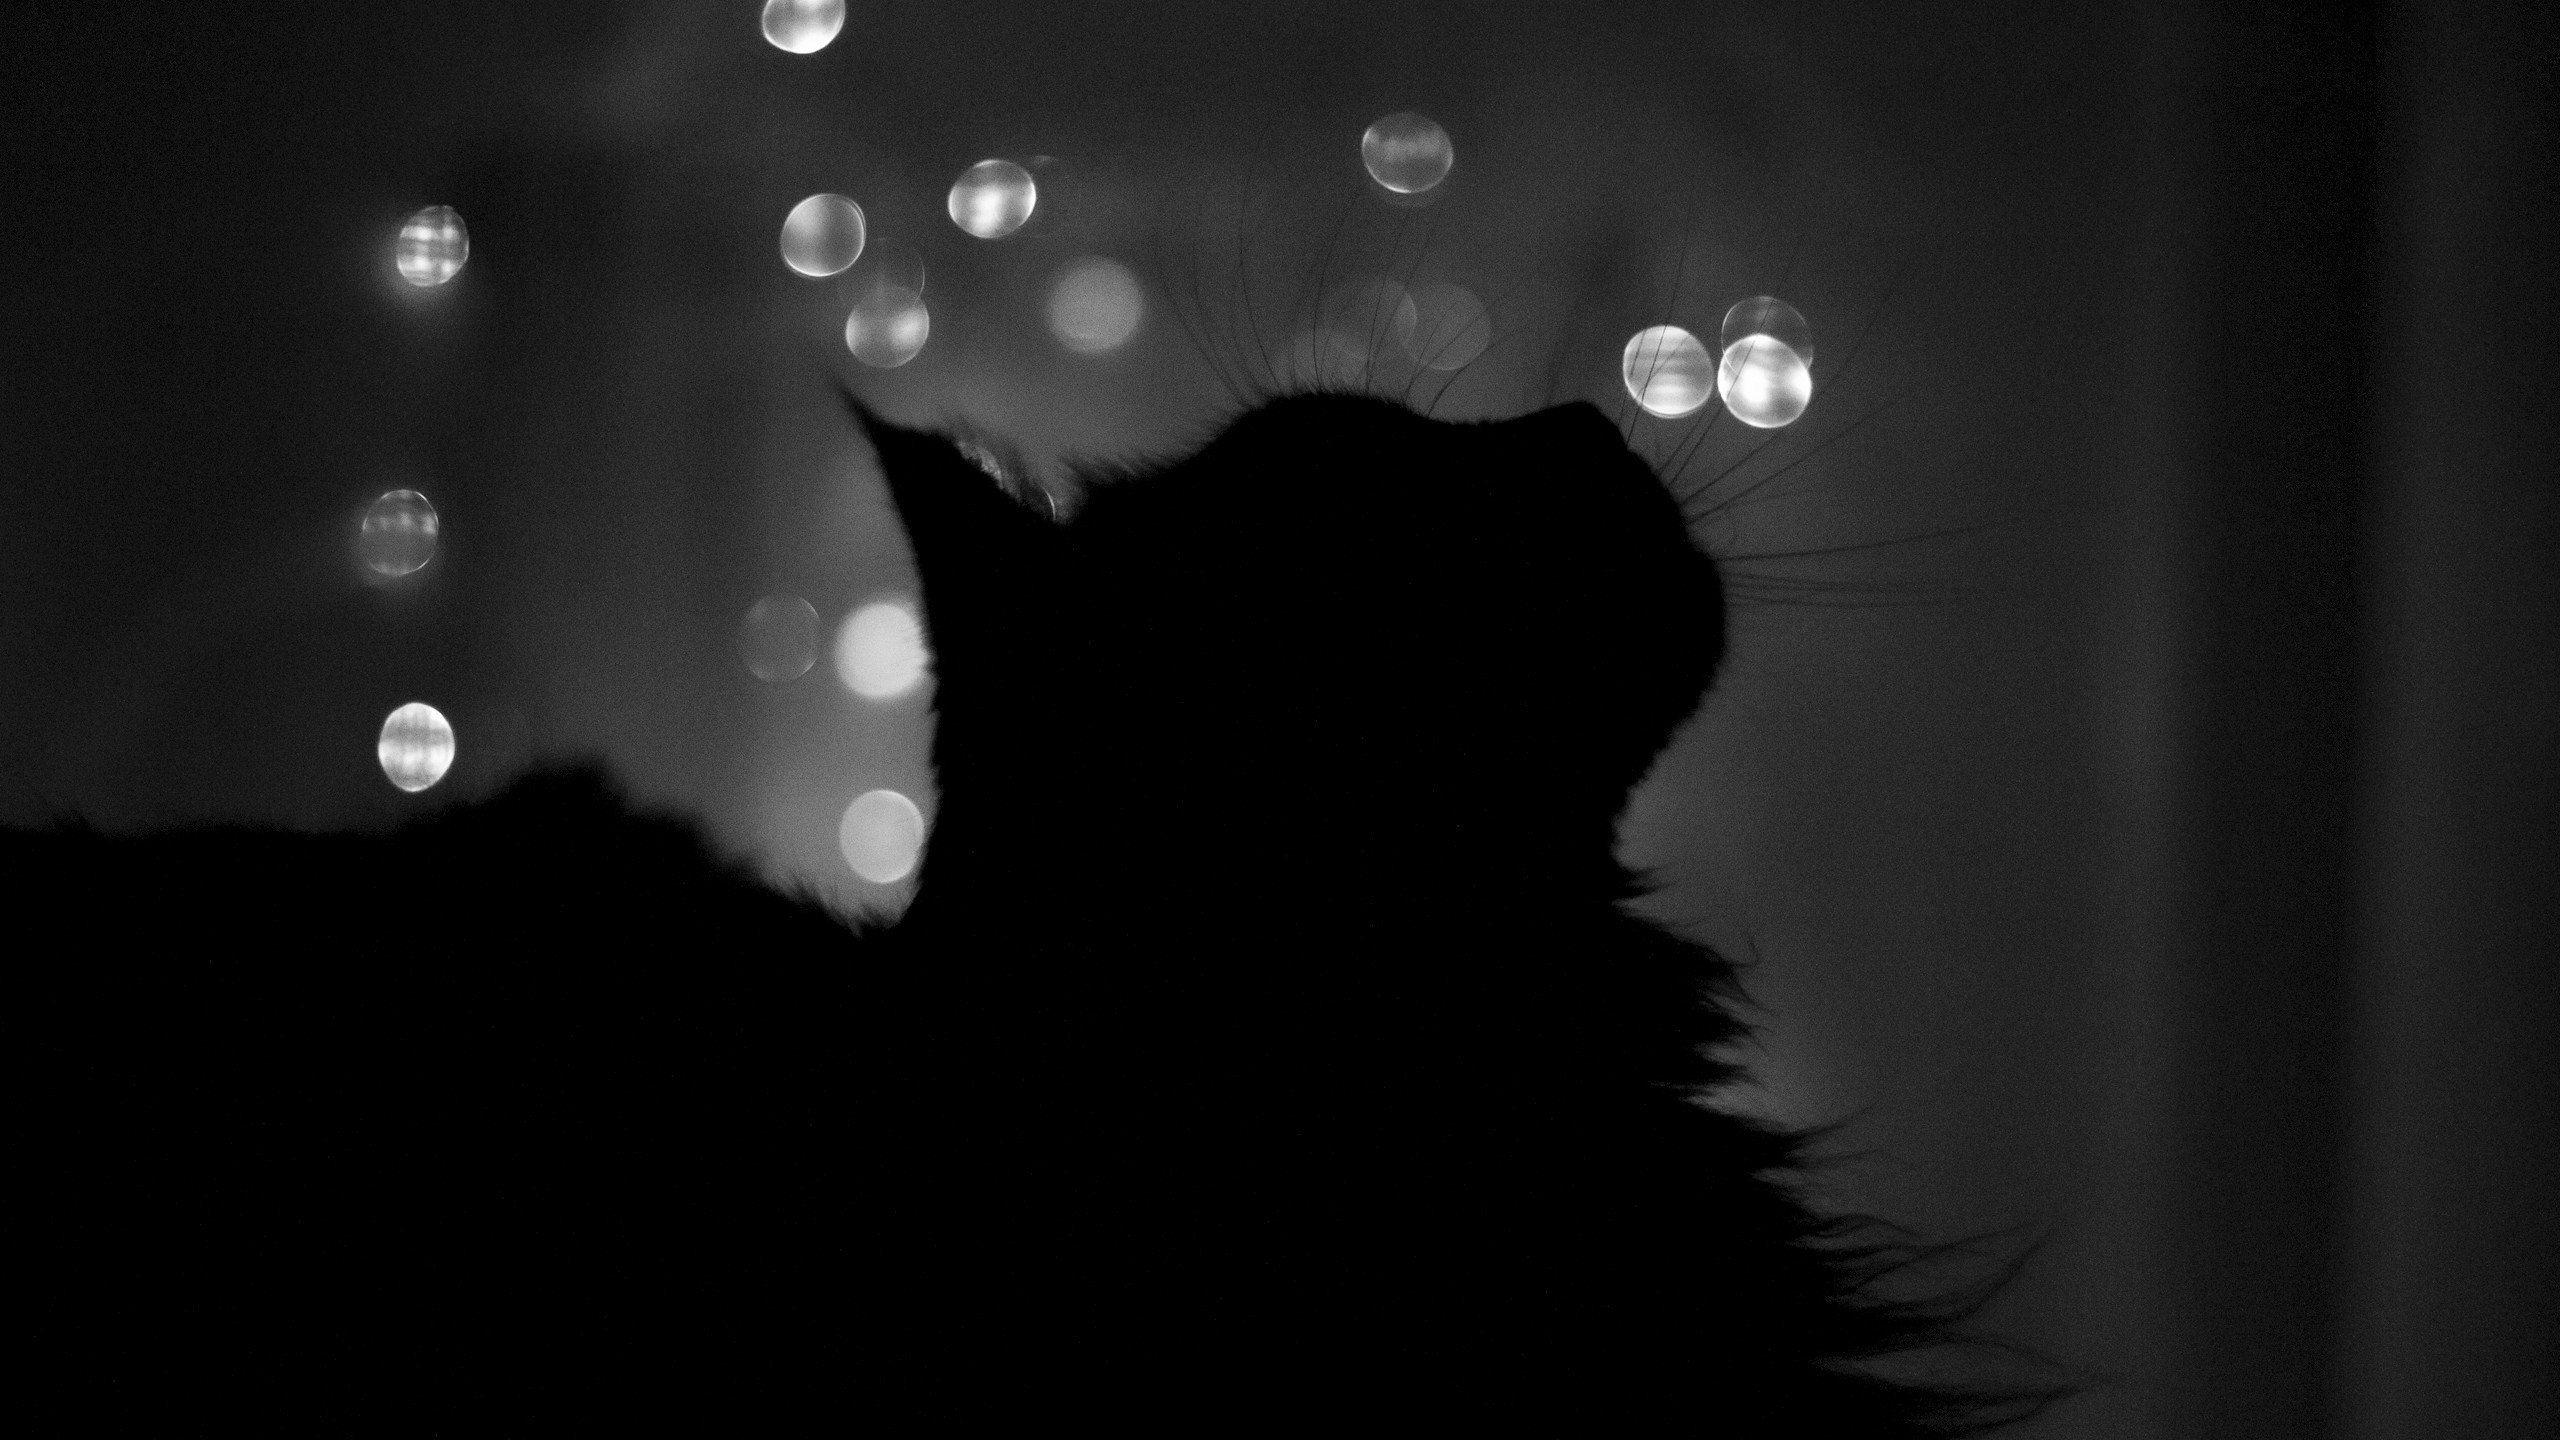 Silhouette of a cat in the dark, photo wallpaper high resolution.